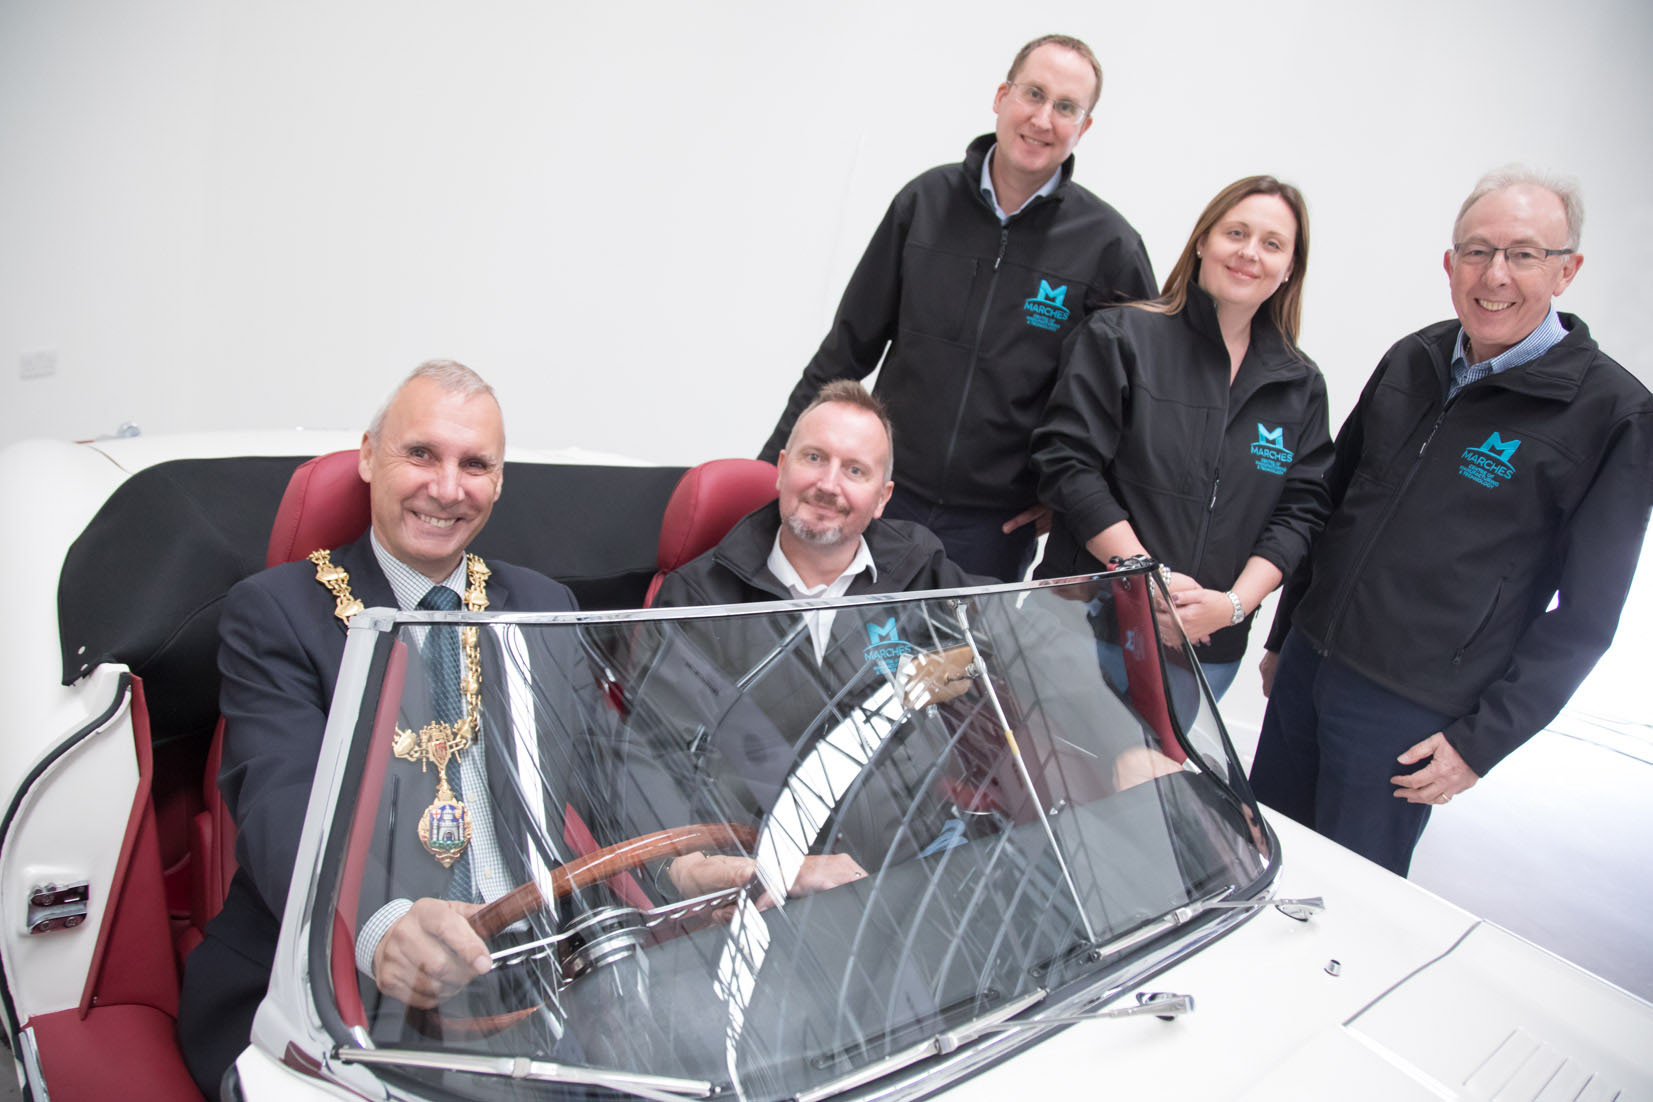 Training Hub - L to R: Cllr Ron Whittle (Mayor of Bridgnorth); Christopher Greenough (Salop Design & Engineering); Matthew Snelson (MCMT); Cllr Elliott Lynch; Bekki Phillips (In-Comm Training), and Mike Roe (Classic Motor Cars).